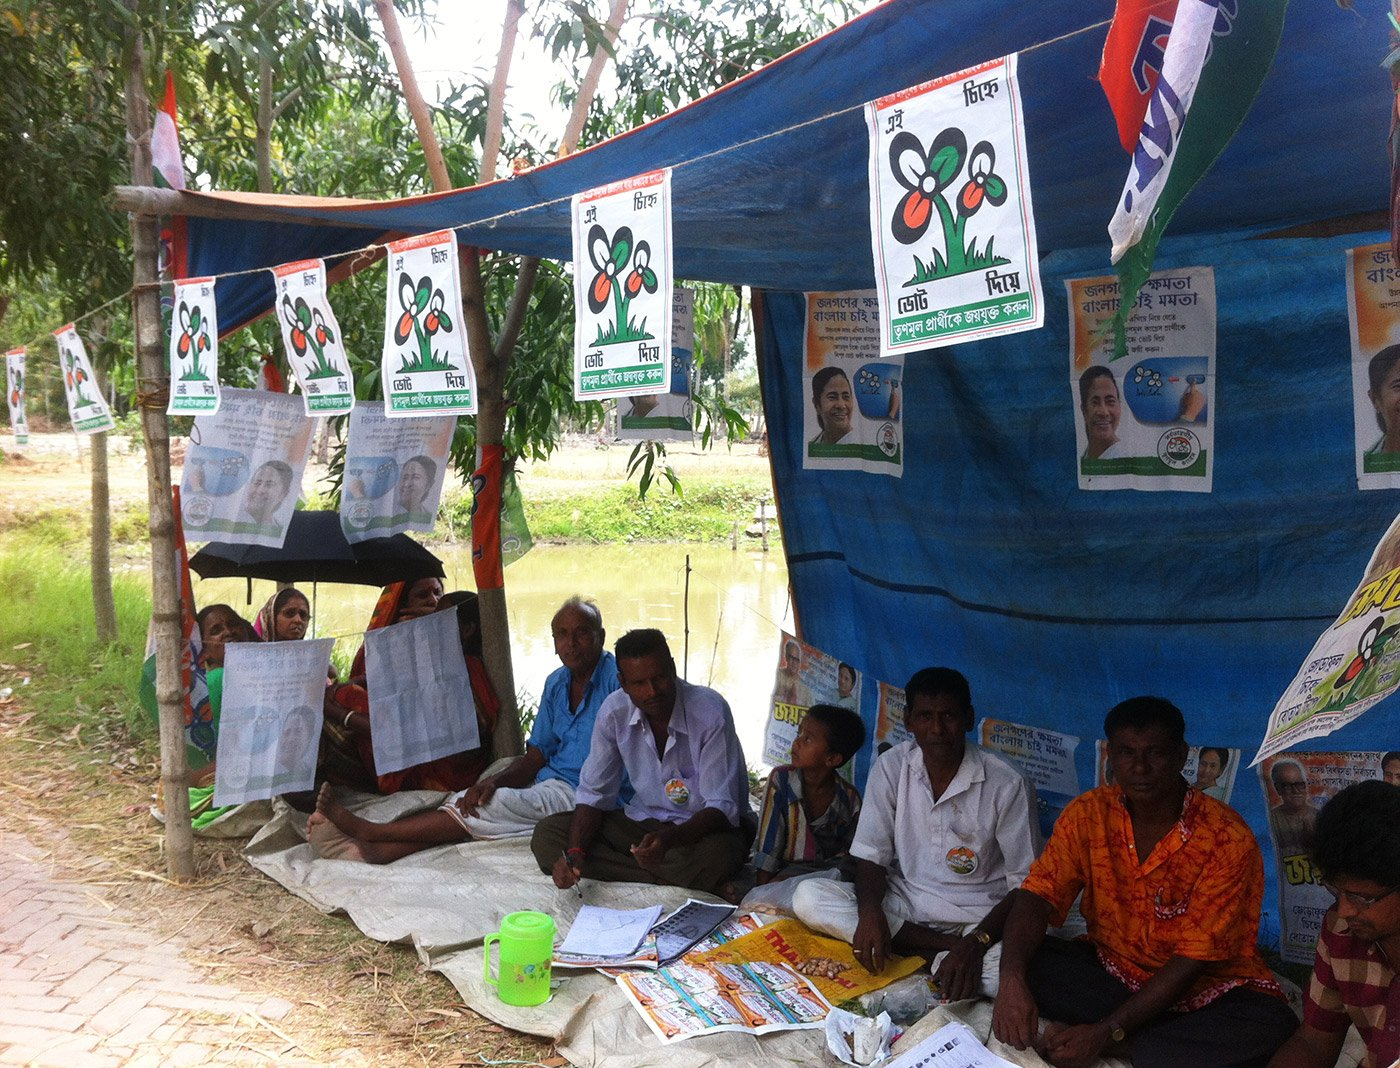 Political parties set up tents to help voters